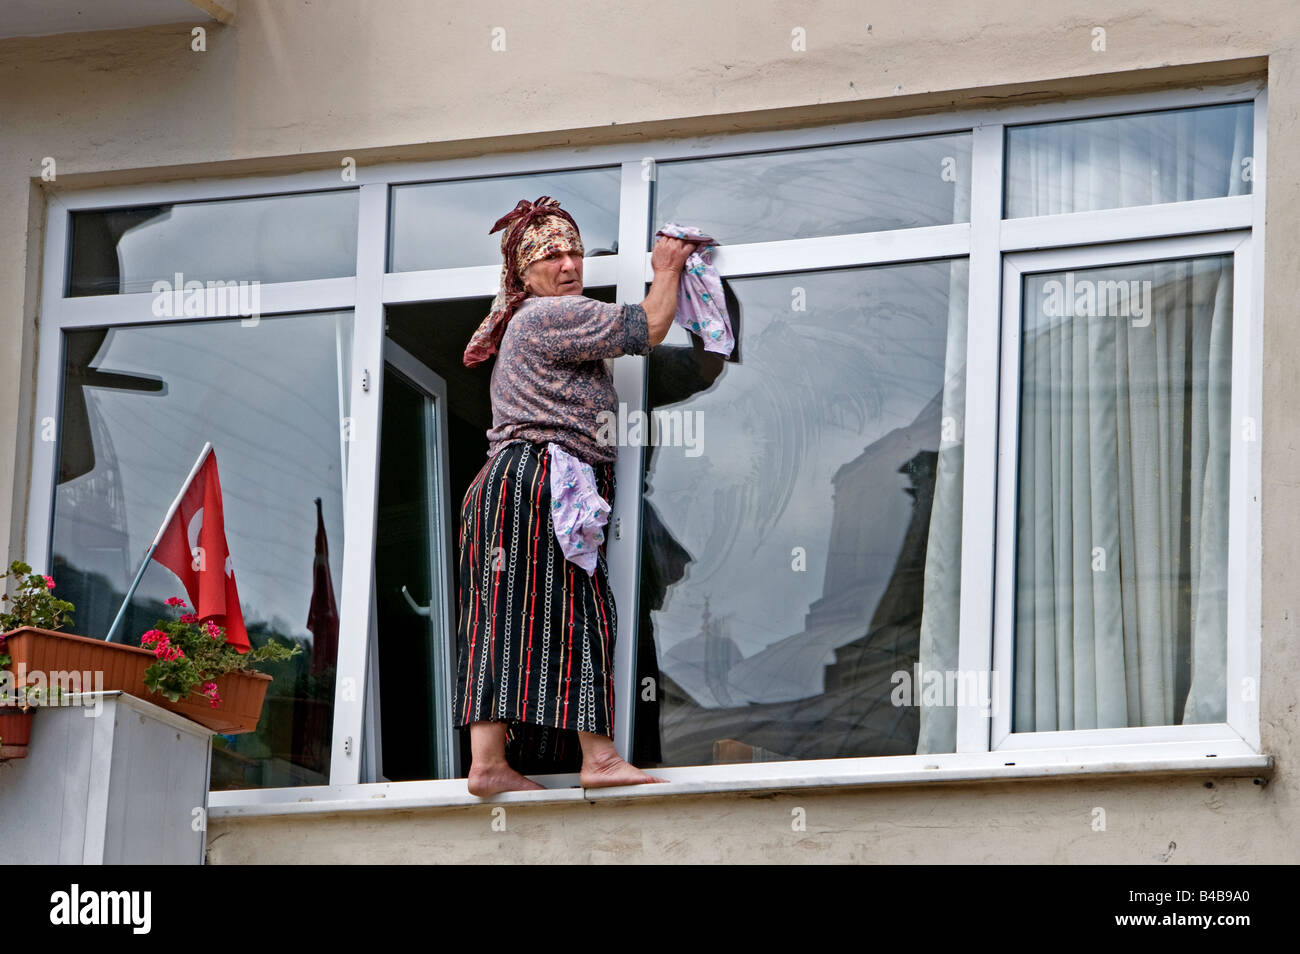 Istinye cleaning woman window windows cleaners dangerous, perilous, risky, hazardous - Stock Image